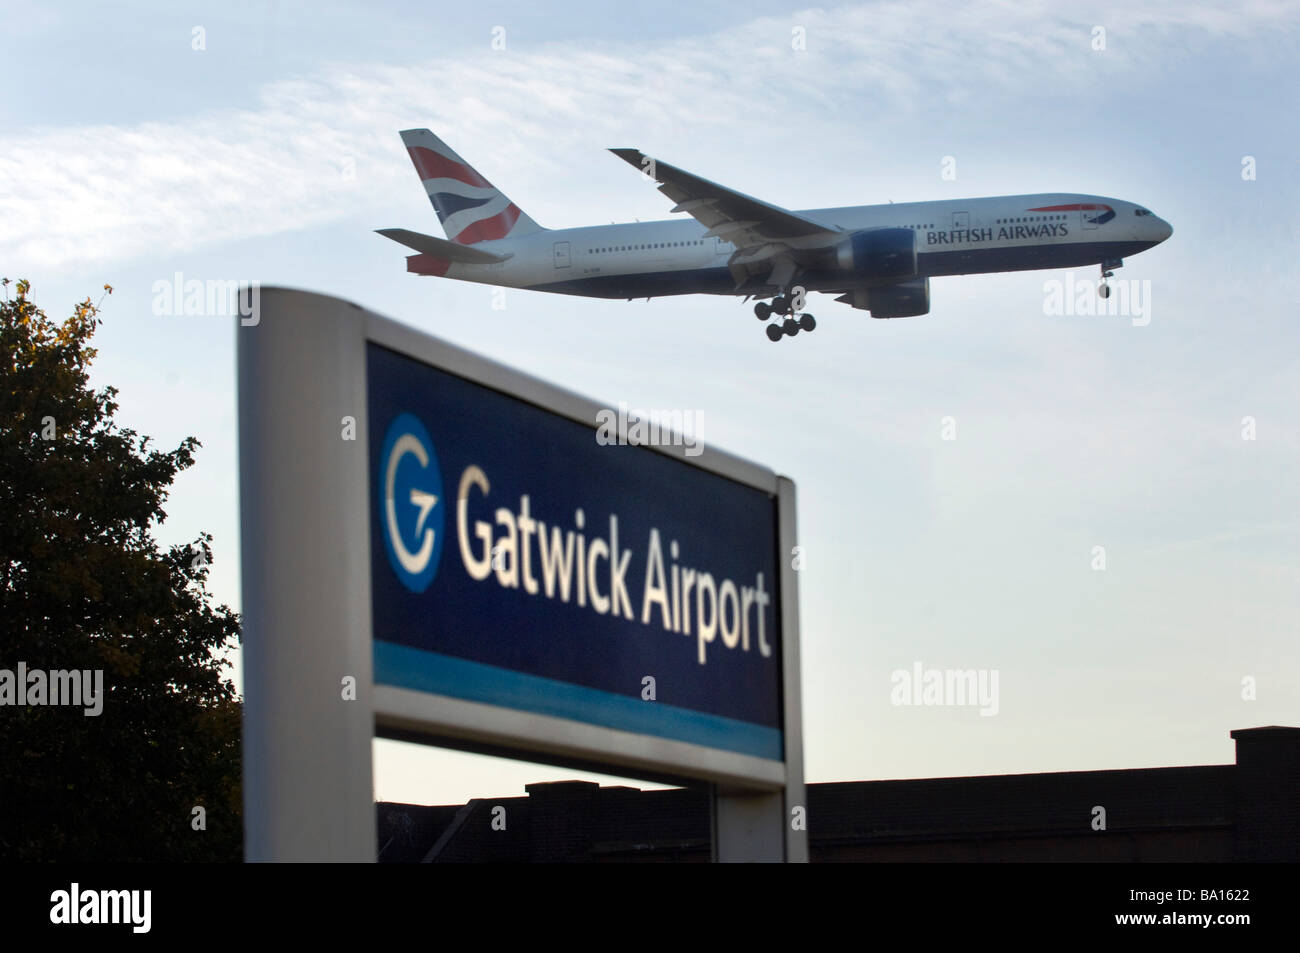 The landing wheels are down as a British Airways Jet Airplane lands above the railway station at Gatwick Airport. - Stock Image